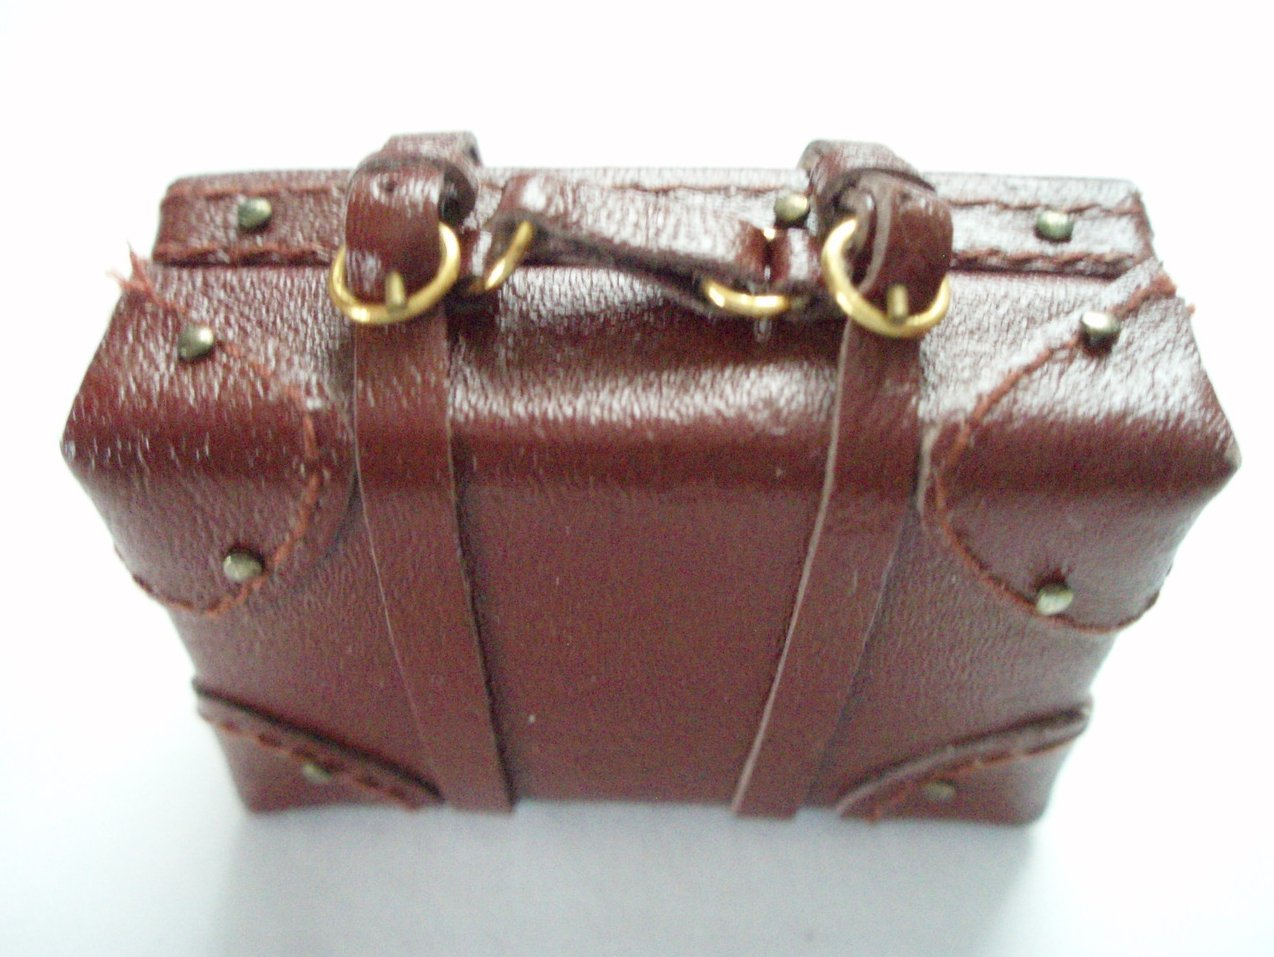 Dollhouse miniature leather luggage suitcase small